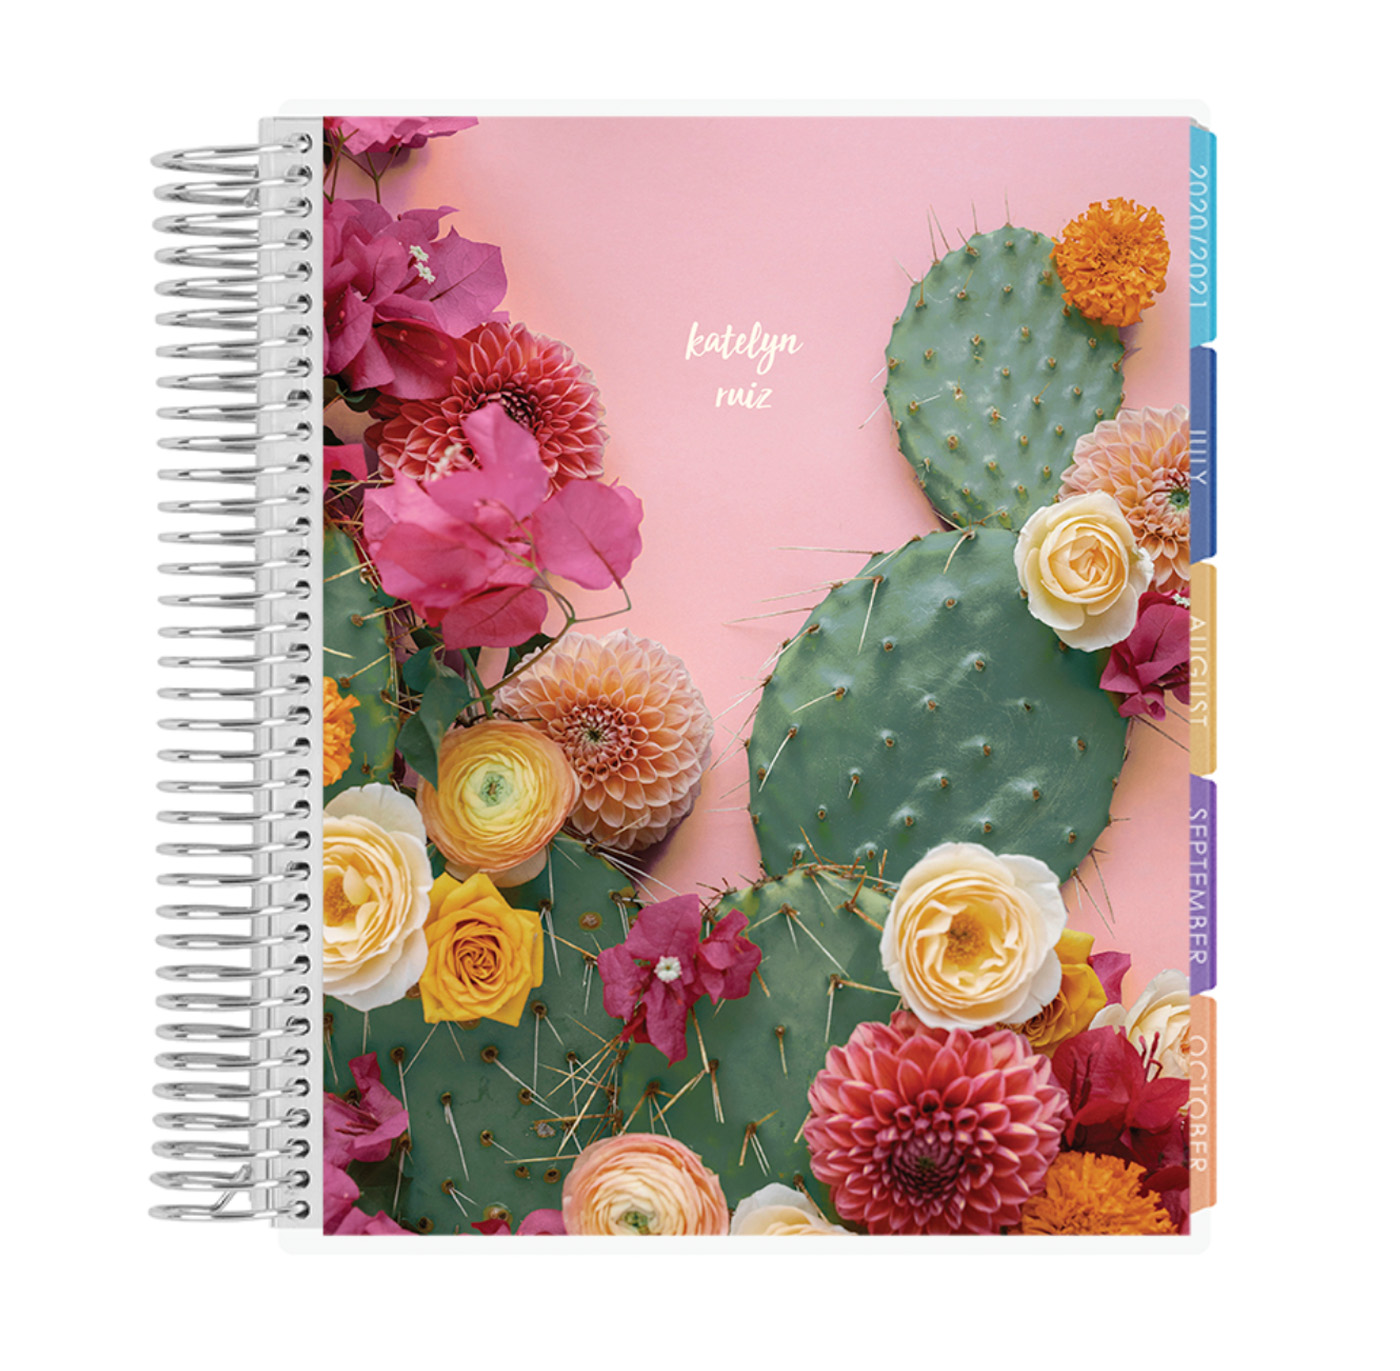 floral cactus life planner from Green Wedding Shoes and Erin Condren